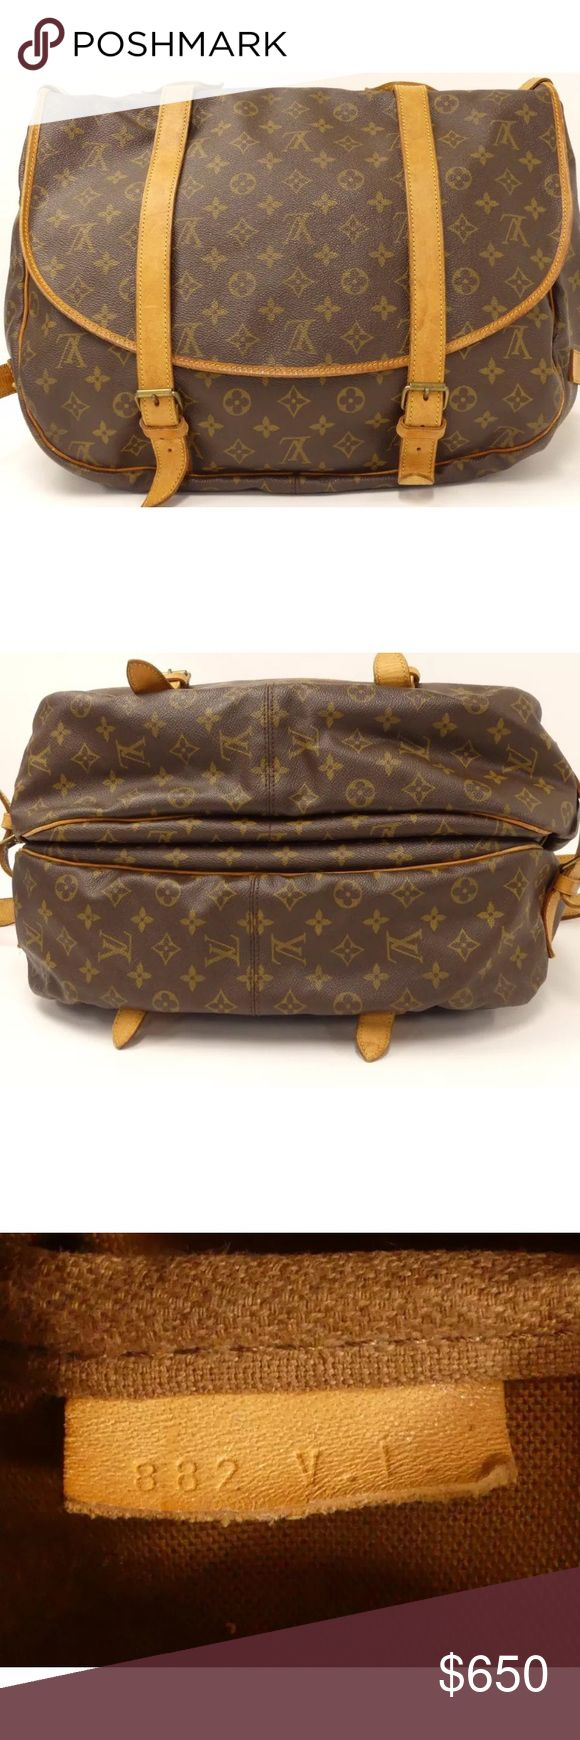 Louis Vuitton Saumur 43 Crossbody Bag Authentic Louis Vuitton Saumur 43 crossbody or  messenger bag with signature Louis Vuitton monogram canvas. Natural vachetta leather finishings & gold toned brass hardware. Adjustable shoulder strap can be used as a cross body bag. Both sides of bag have front strap belt with buckles that open up interior compartments. Great durable bag that is perfect for travelling when you want to keep your hands free. measures: Length: 42cm x Height: 36cm x Depth…